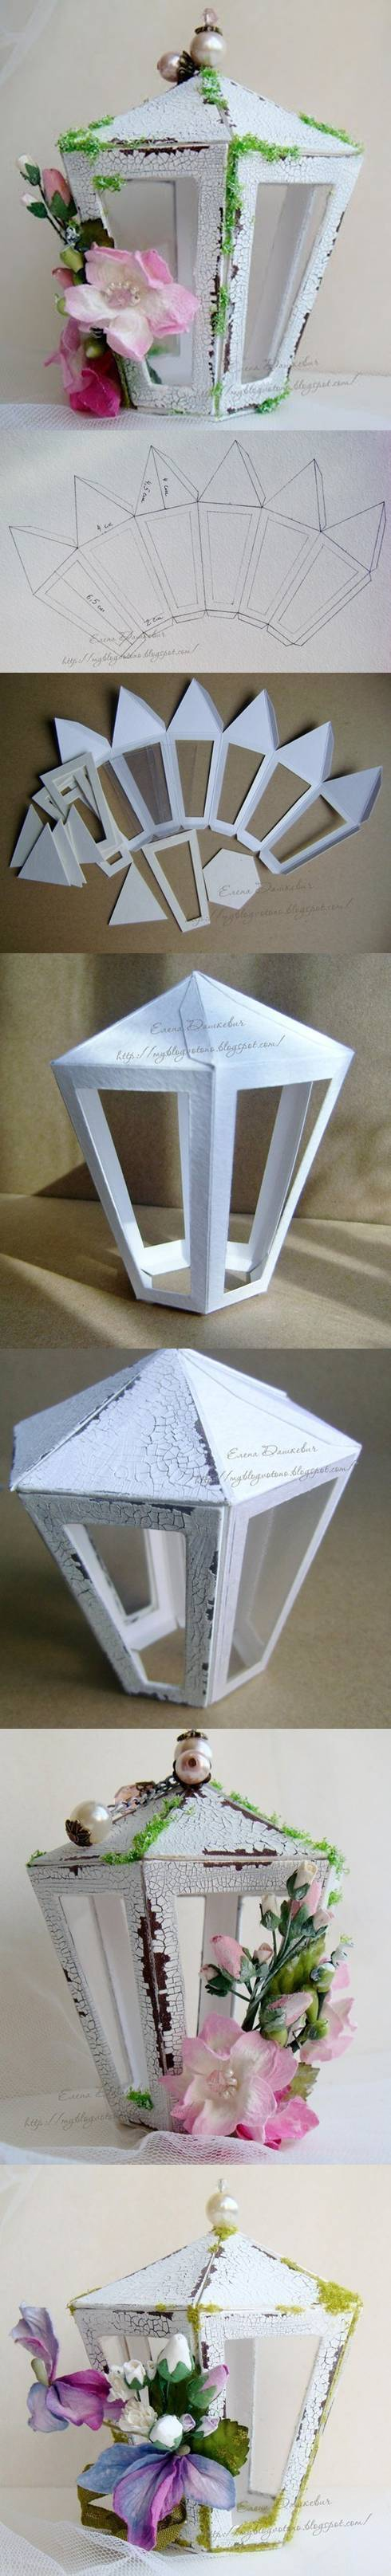 Template To Make A Paper Lantern Recycled Crafts